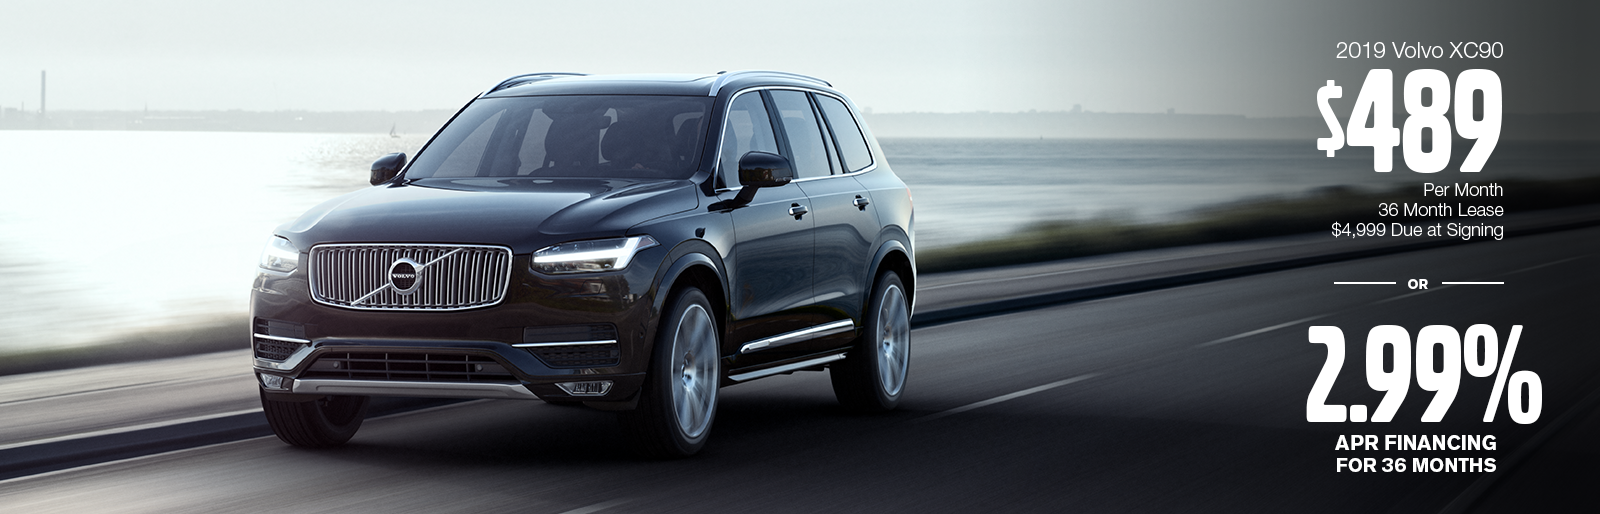 2019 Volvo XC90 Changes, Specs And Price >> New 2019 Volvo Xc90 Special Suv Lease Savings Offer Gilbert Az